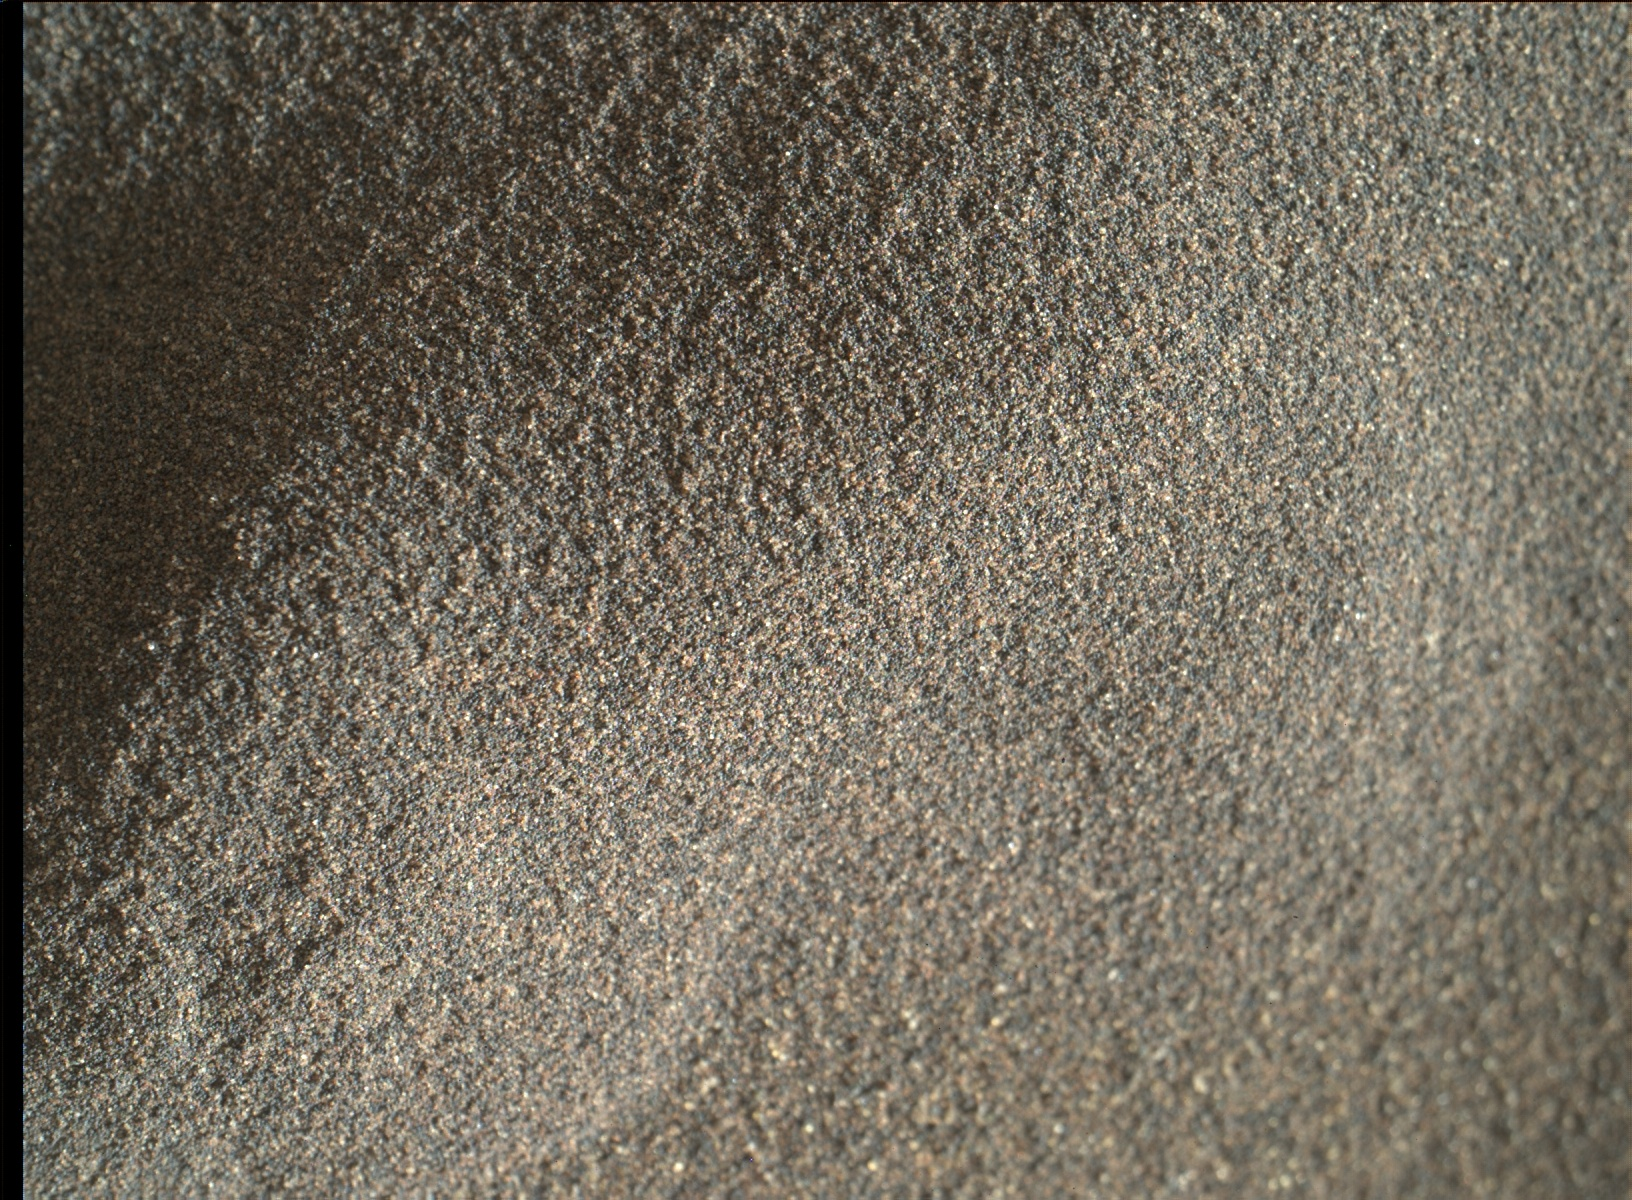 Nasa's Mars rover Curiosity acquired this image using its Mars Hand Lens Imager (MAHLI) on Sol 1226